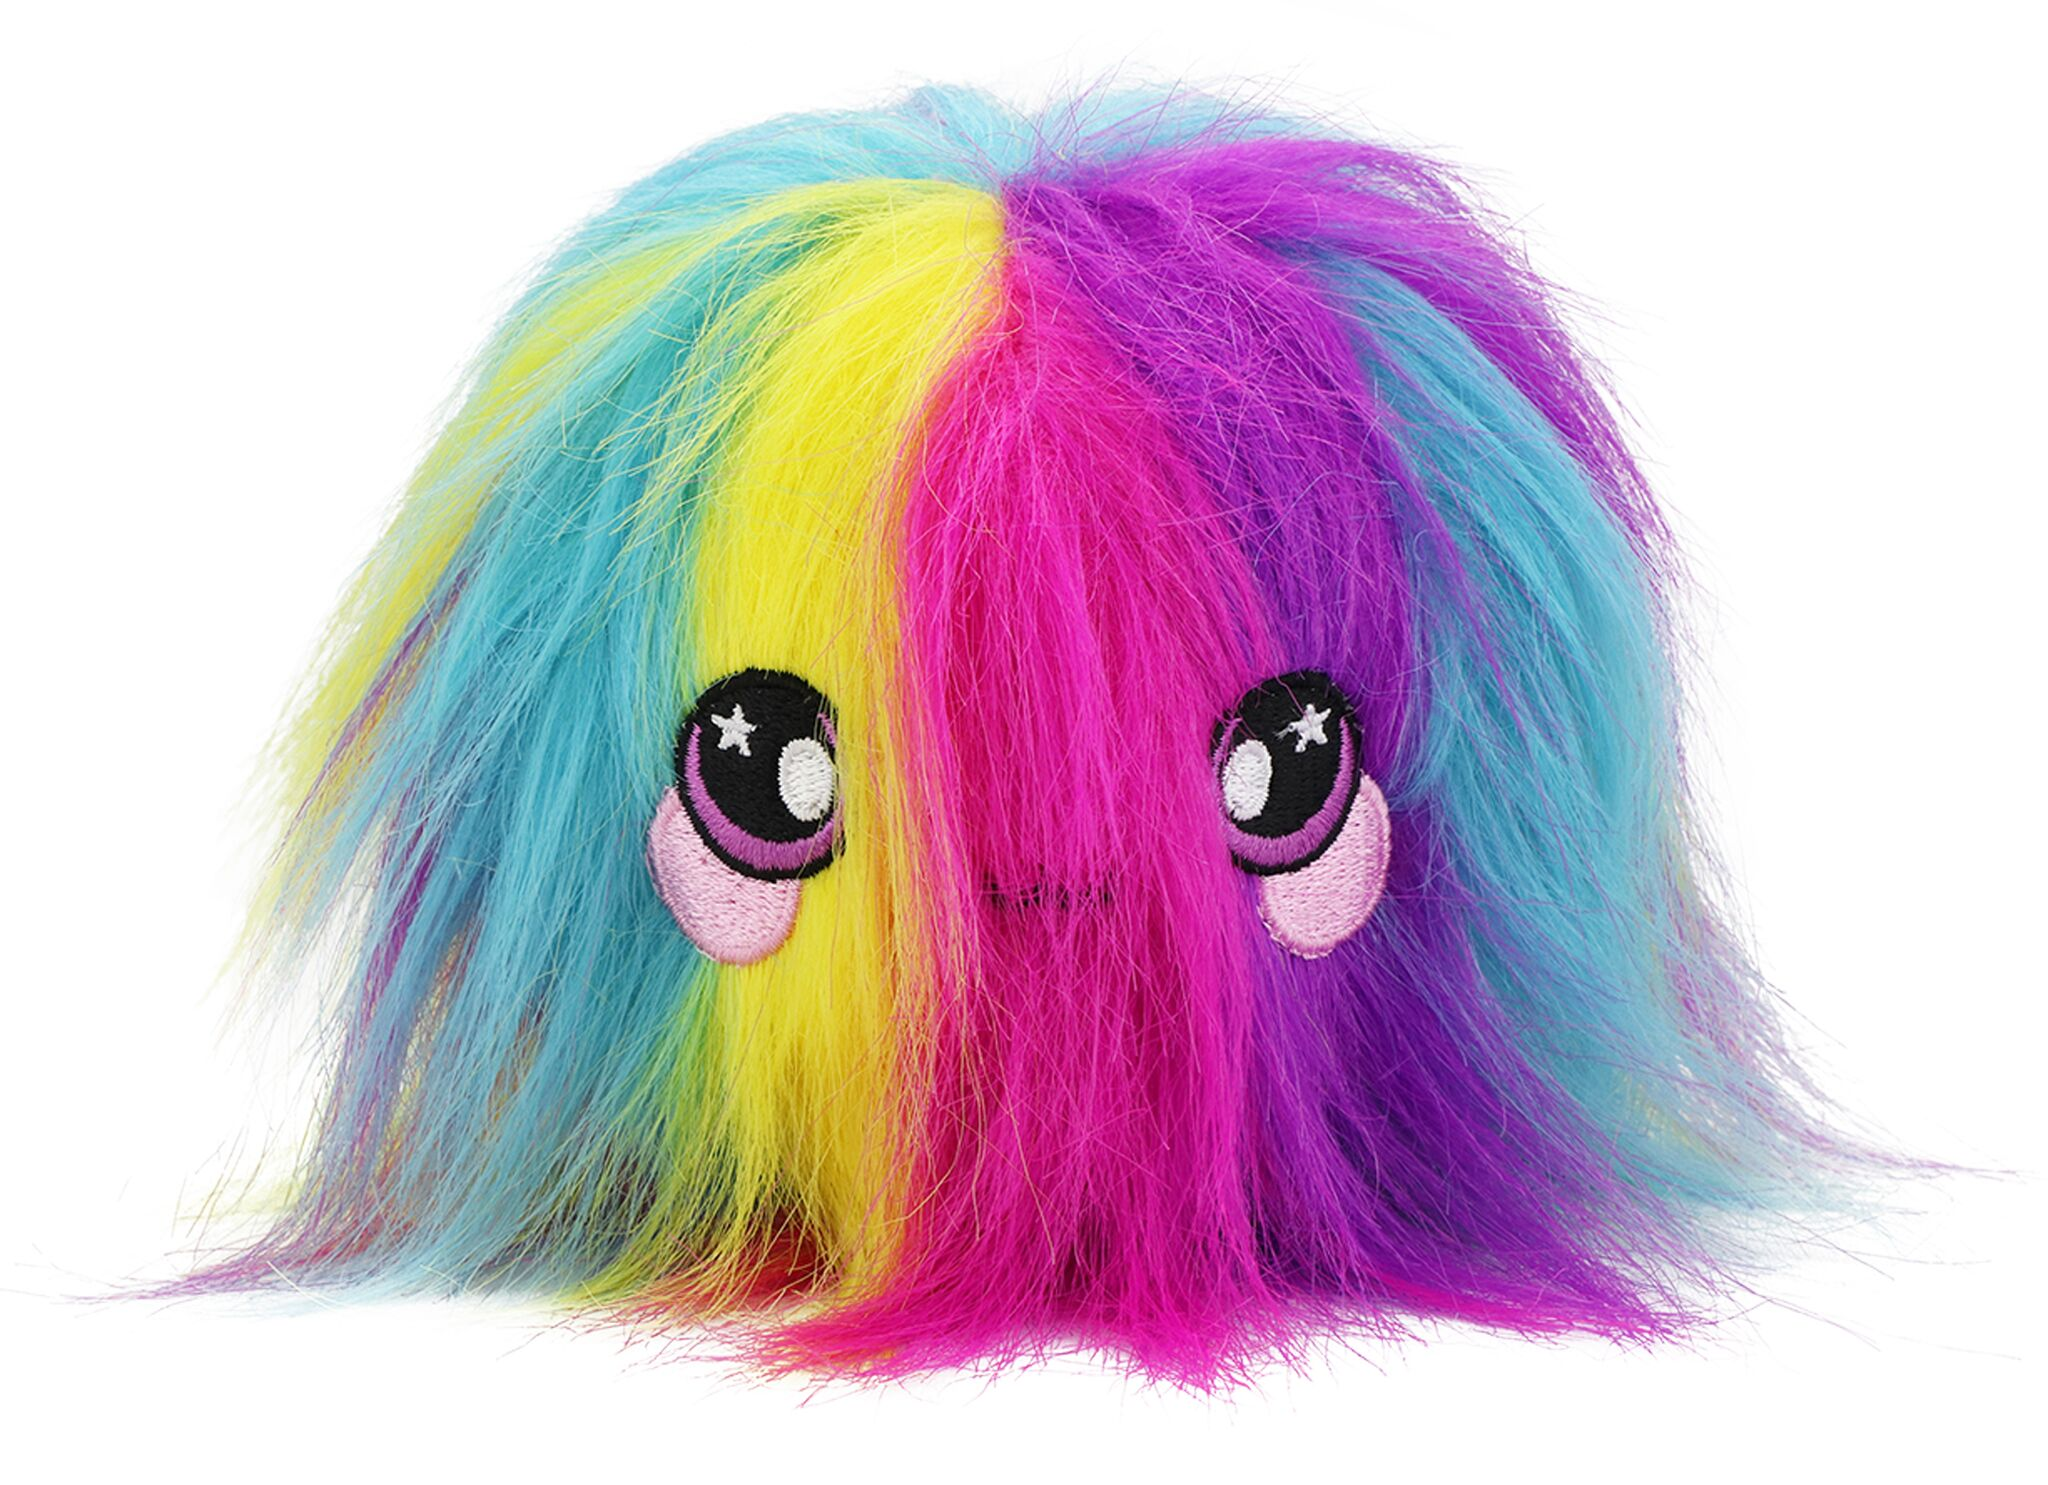 "Squeezamals, Fluffy Furball - 3.5"" Super-Squishy Foam Stuffed Animal! Squishy, Squeezable, Cute, Soft, Adorable!"